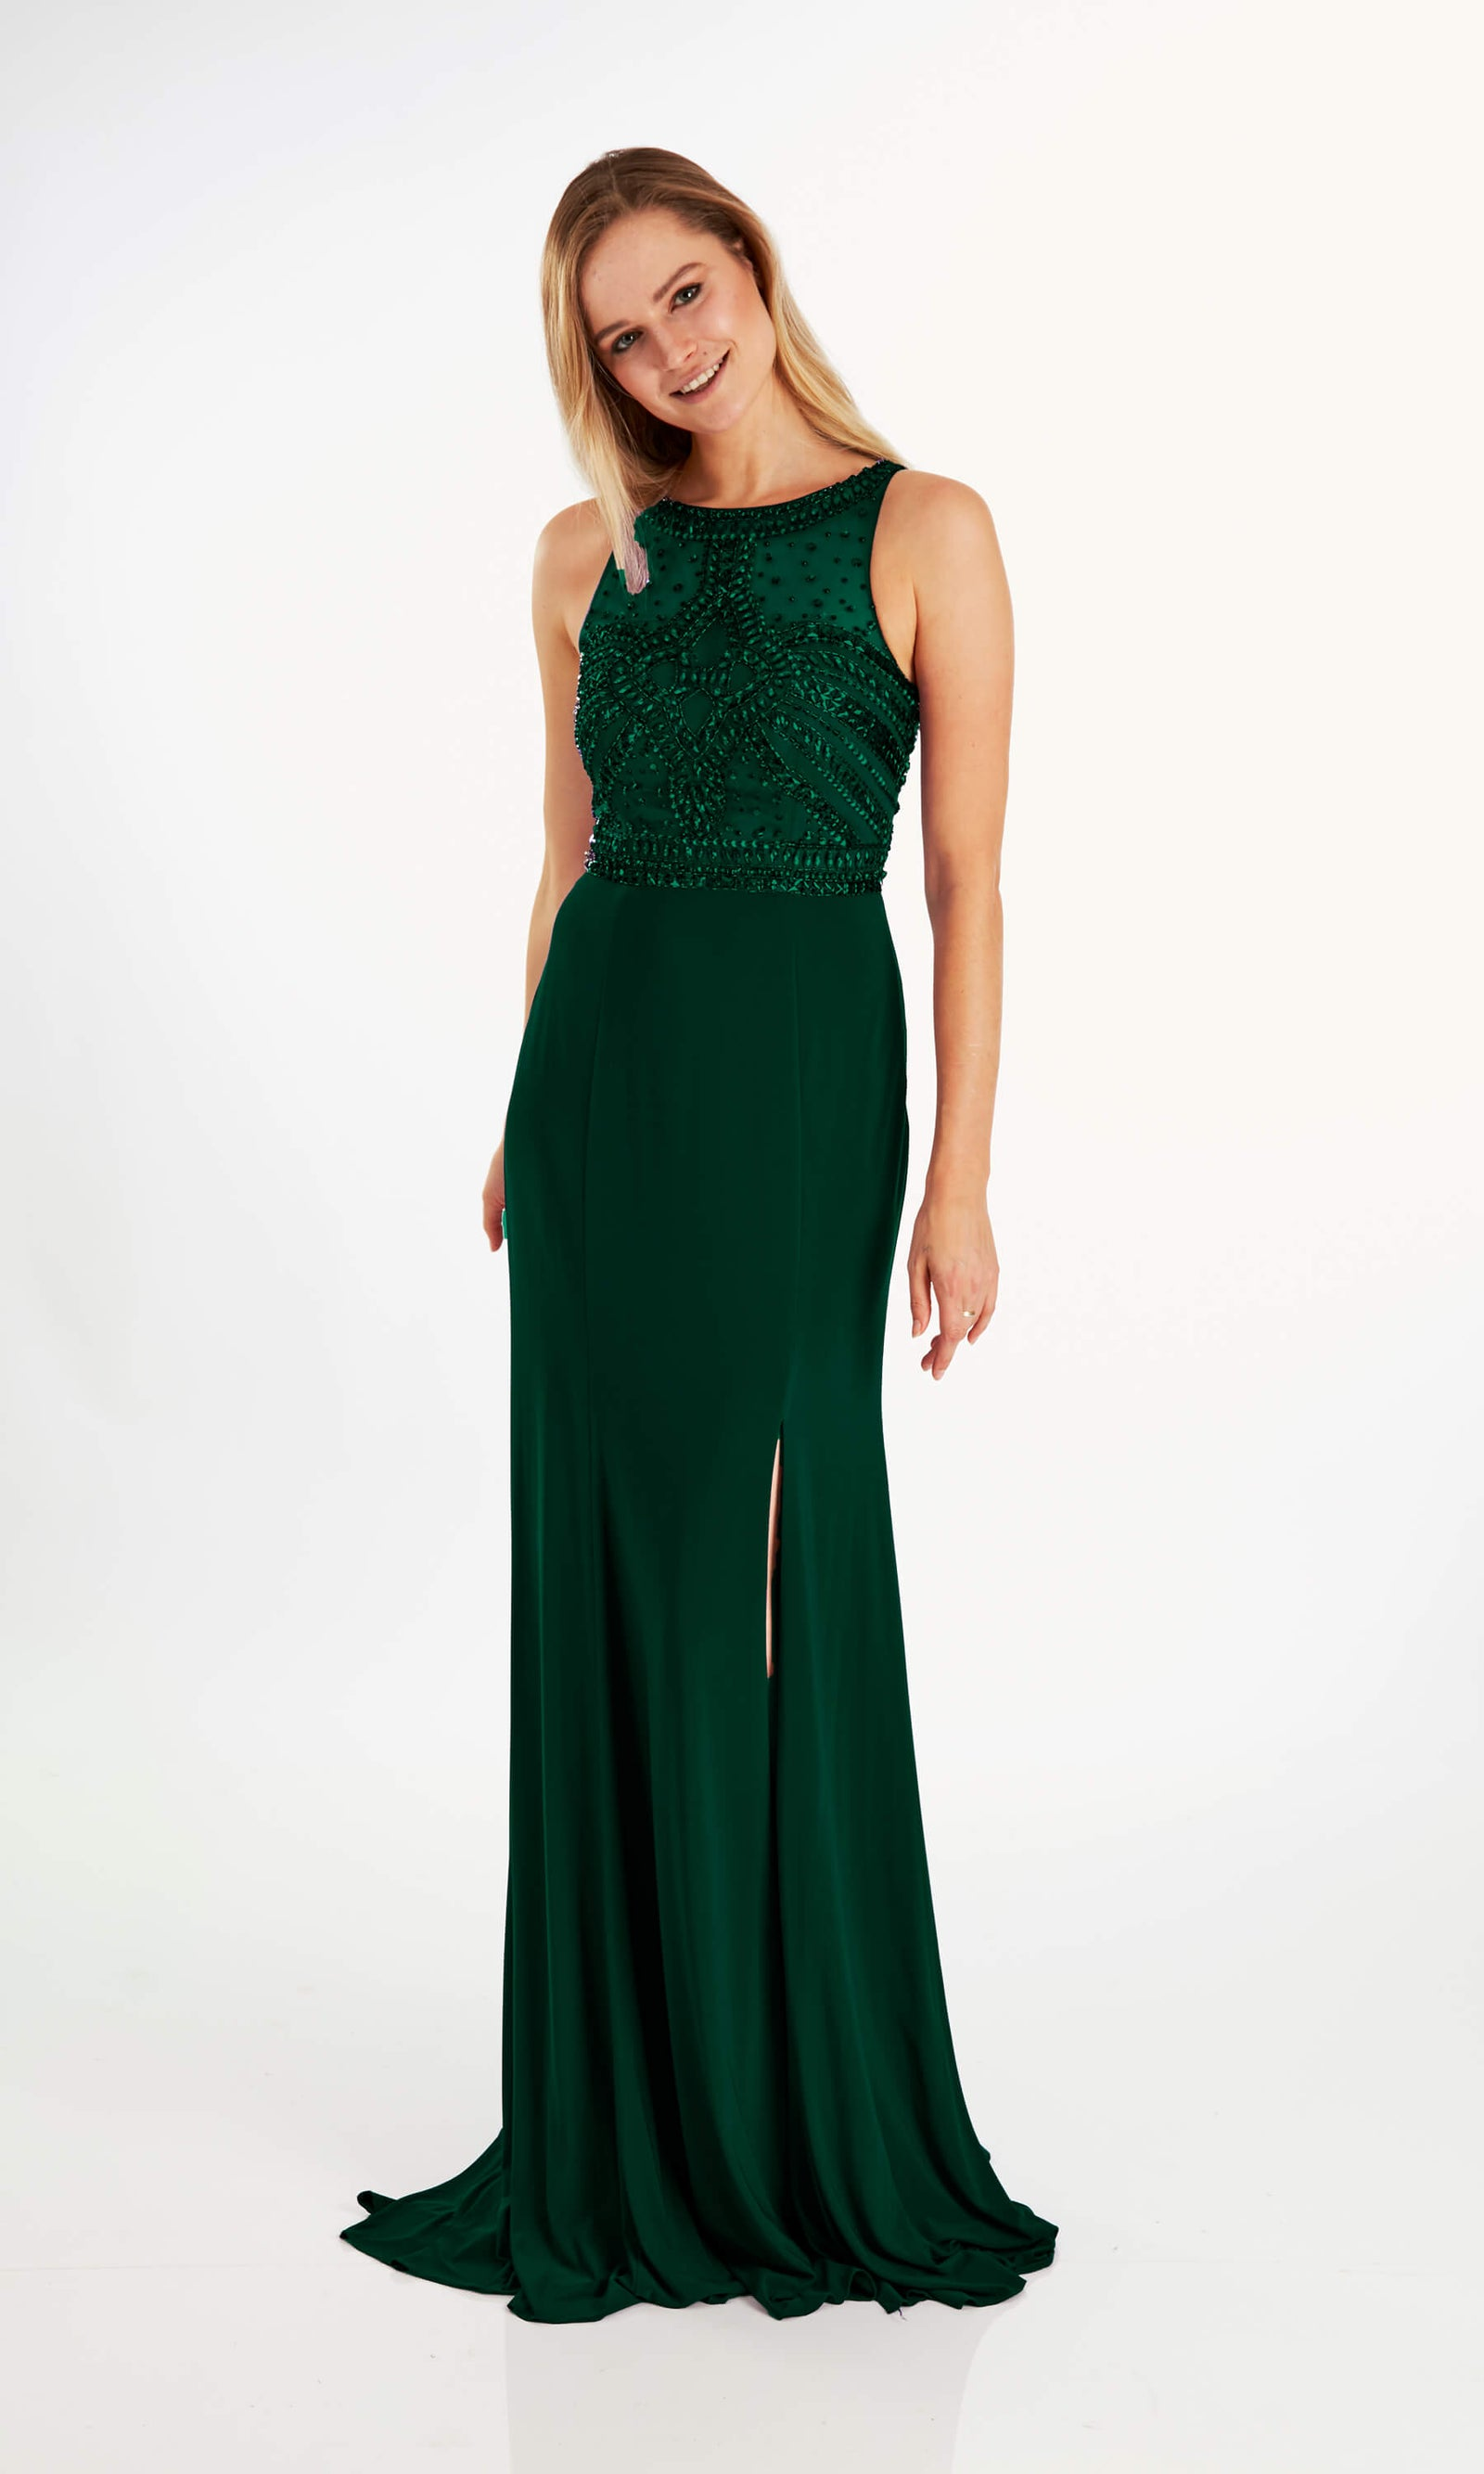 Mona Green Crystal Breeze High Neck Evening Dress - Fab Frocks